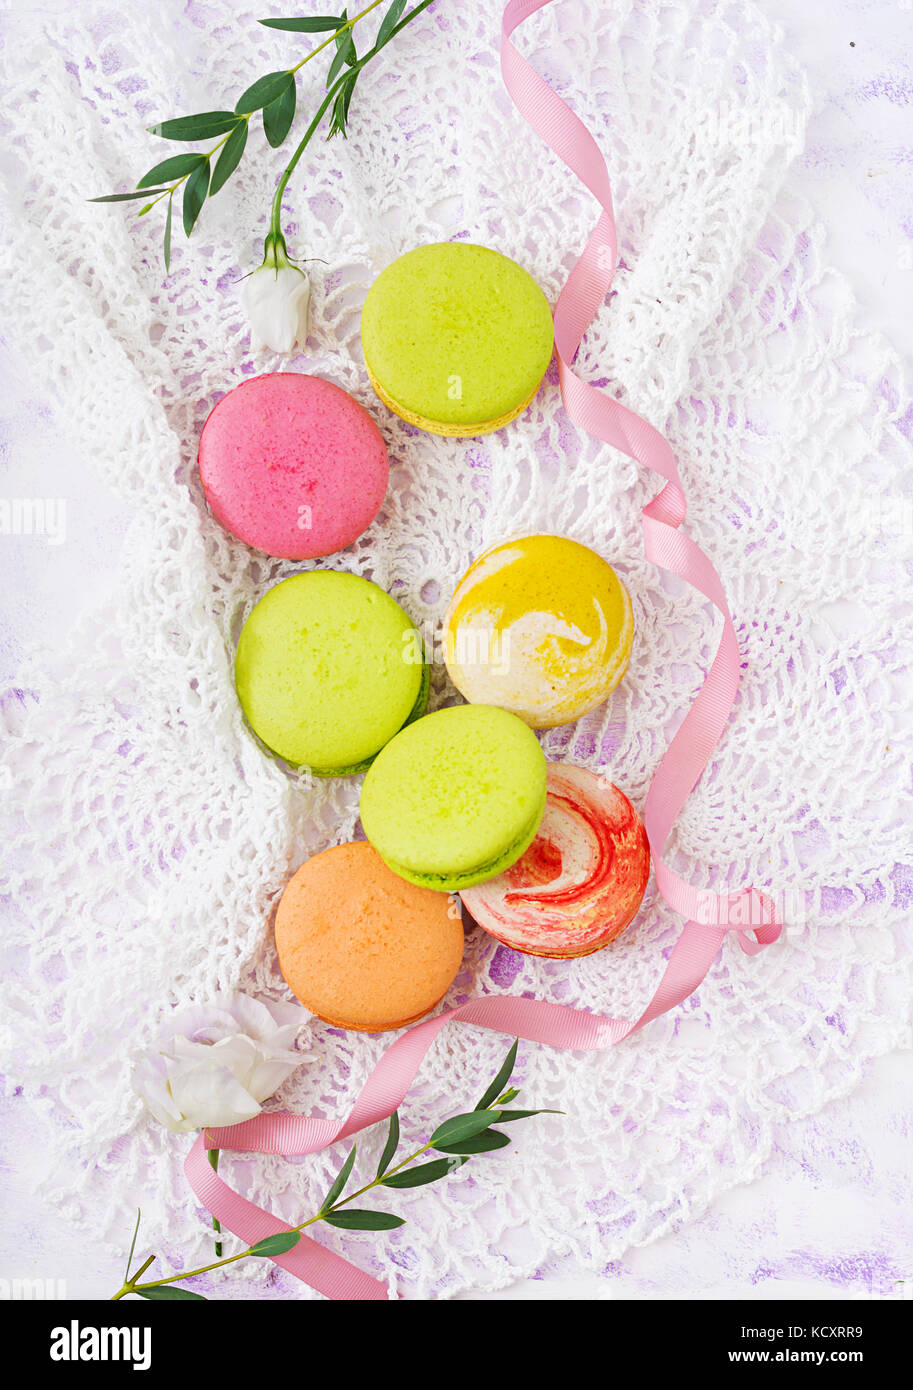 Colorful macaroons  on a ligth  background. Flat lay. Top view - Stock Image